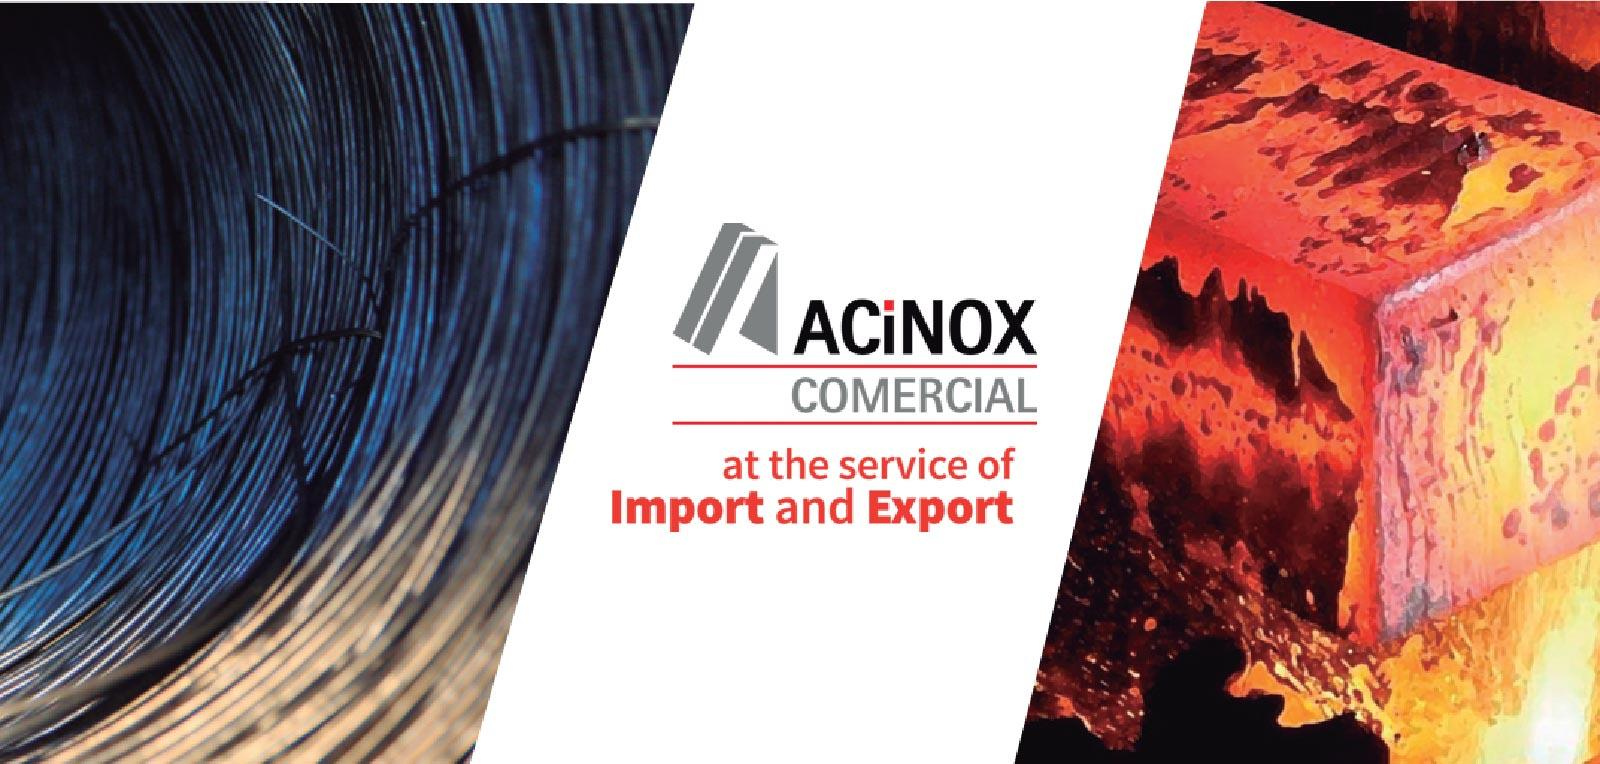 ACINOX COMERCIAL. At the service of import and export